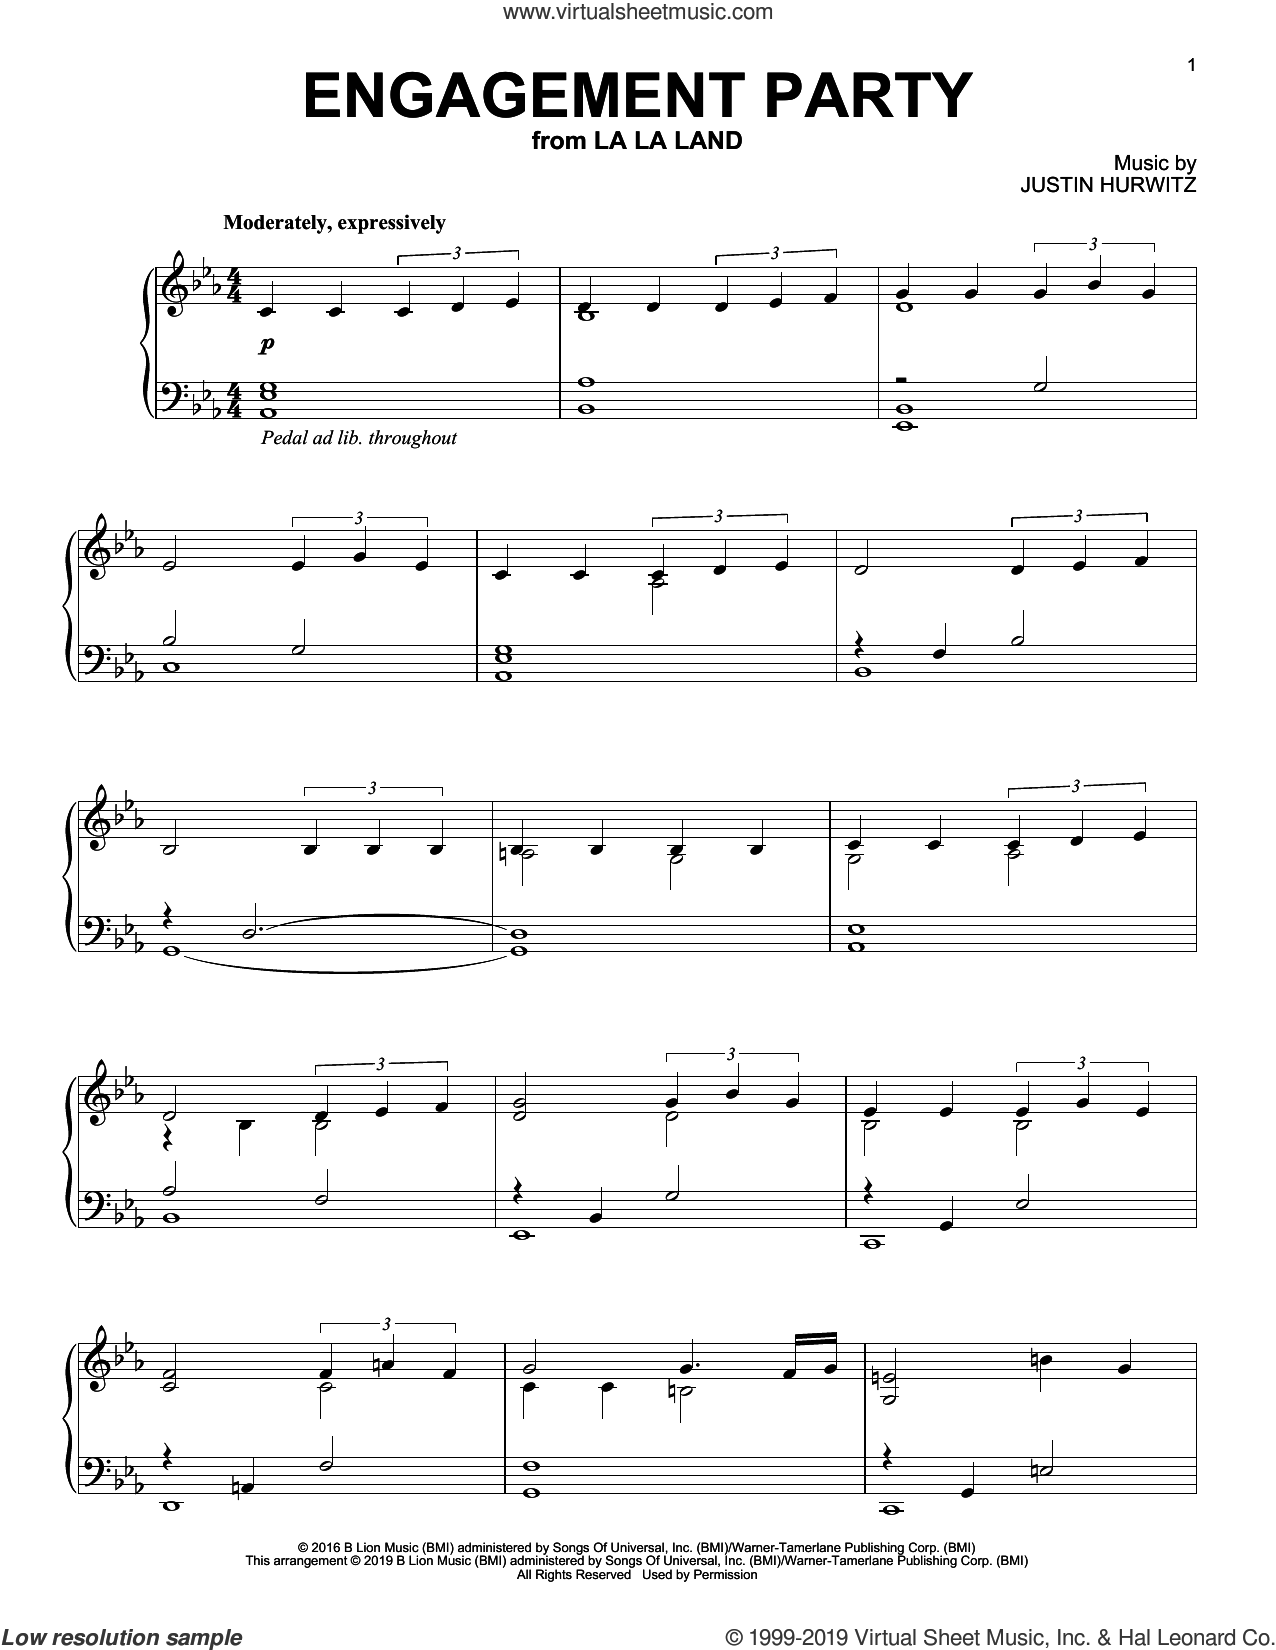 Engagement Party (from La La Land) sheet music for piano solo by Justin Hurwitz, Benj Pasek and Justin Paul, intermediate skill level